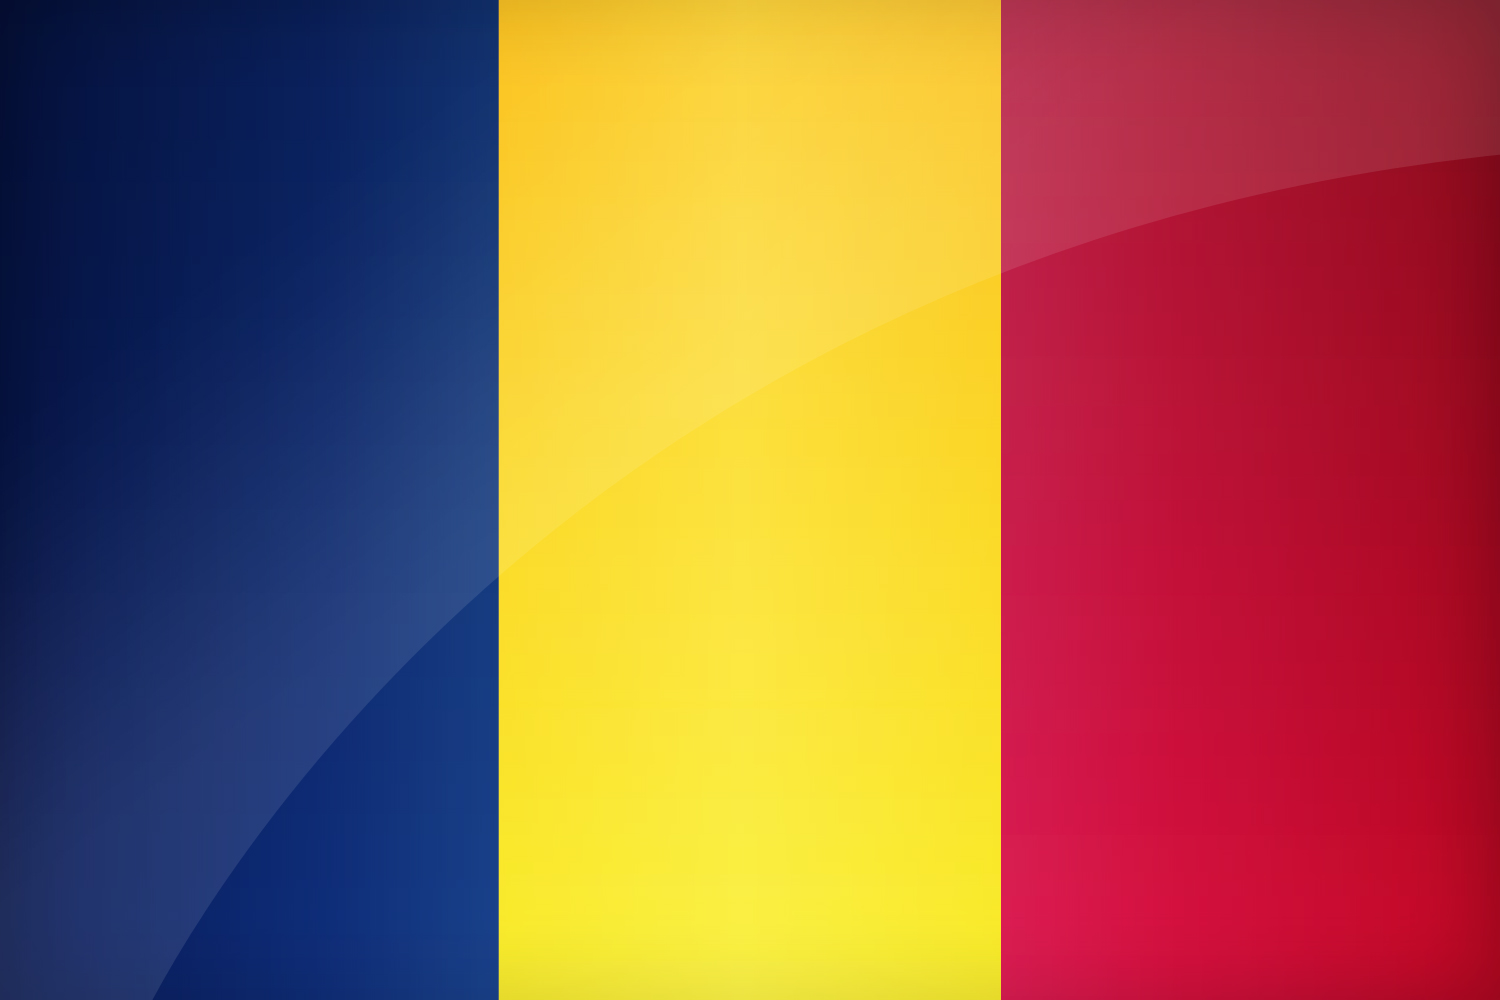 Romanian Flag, Flag of Romania